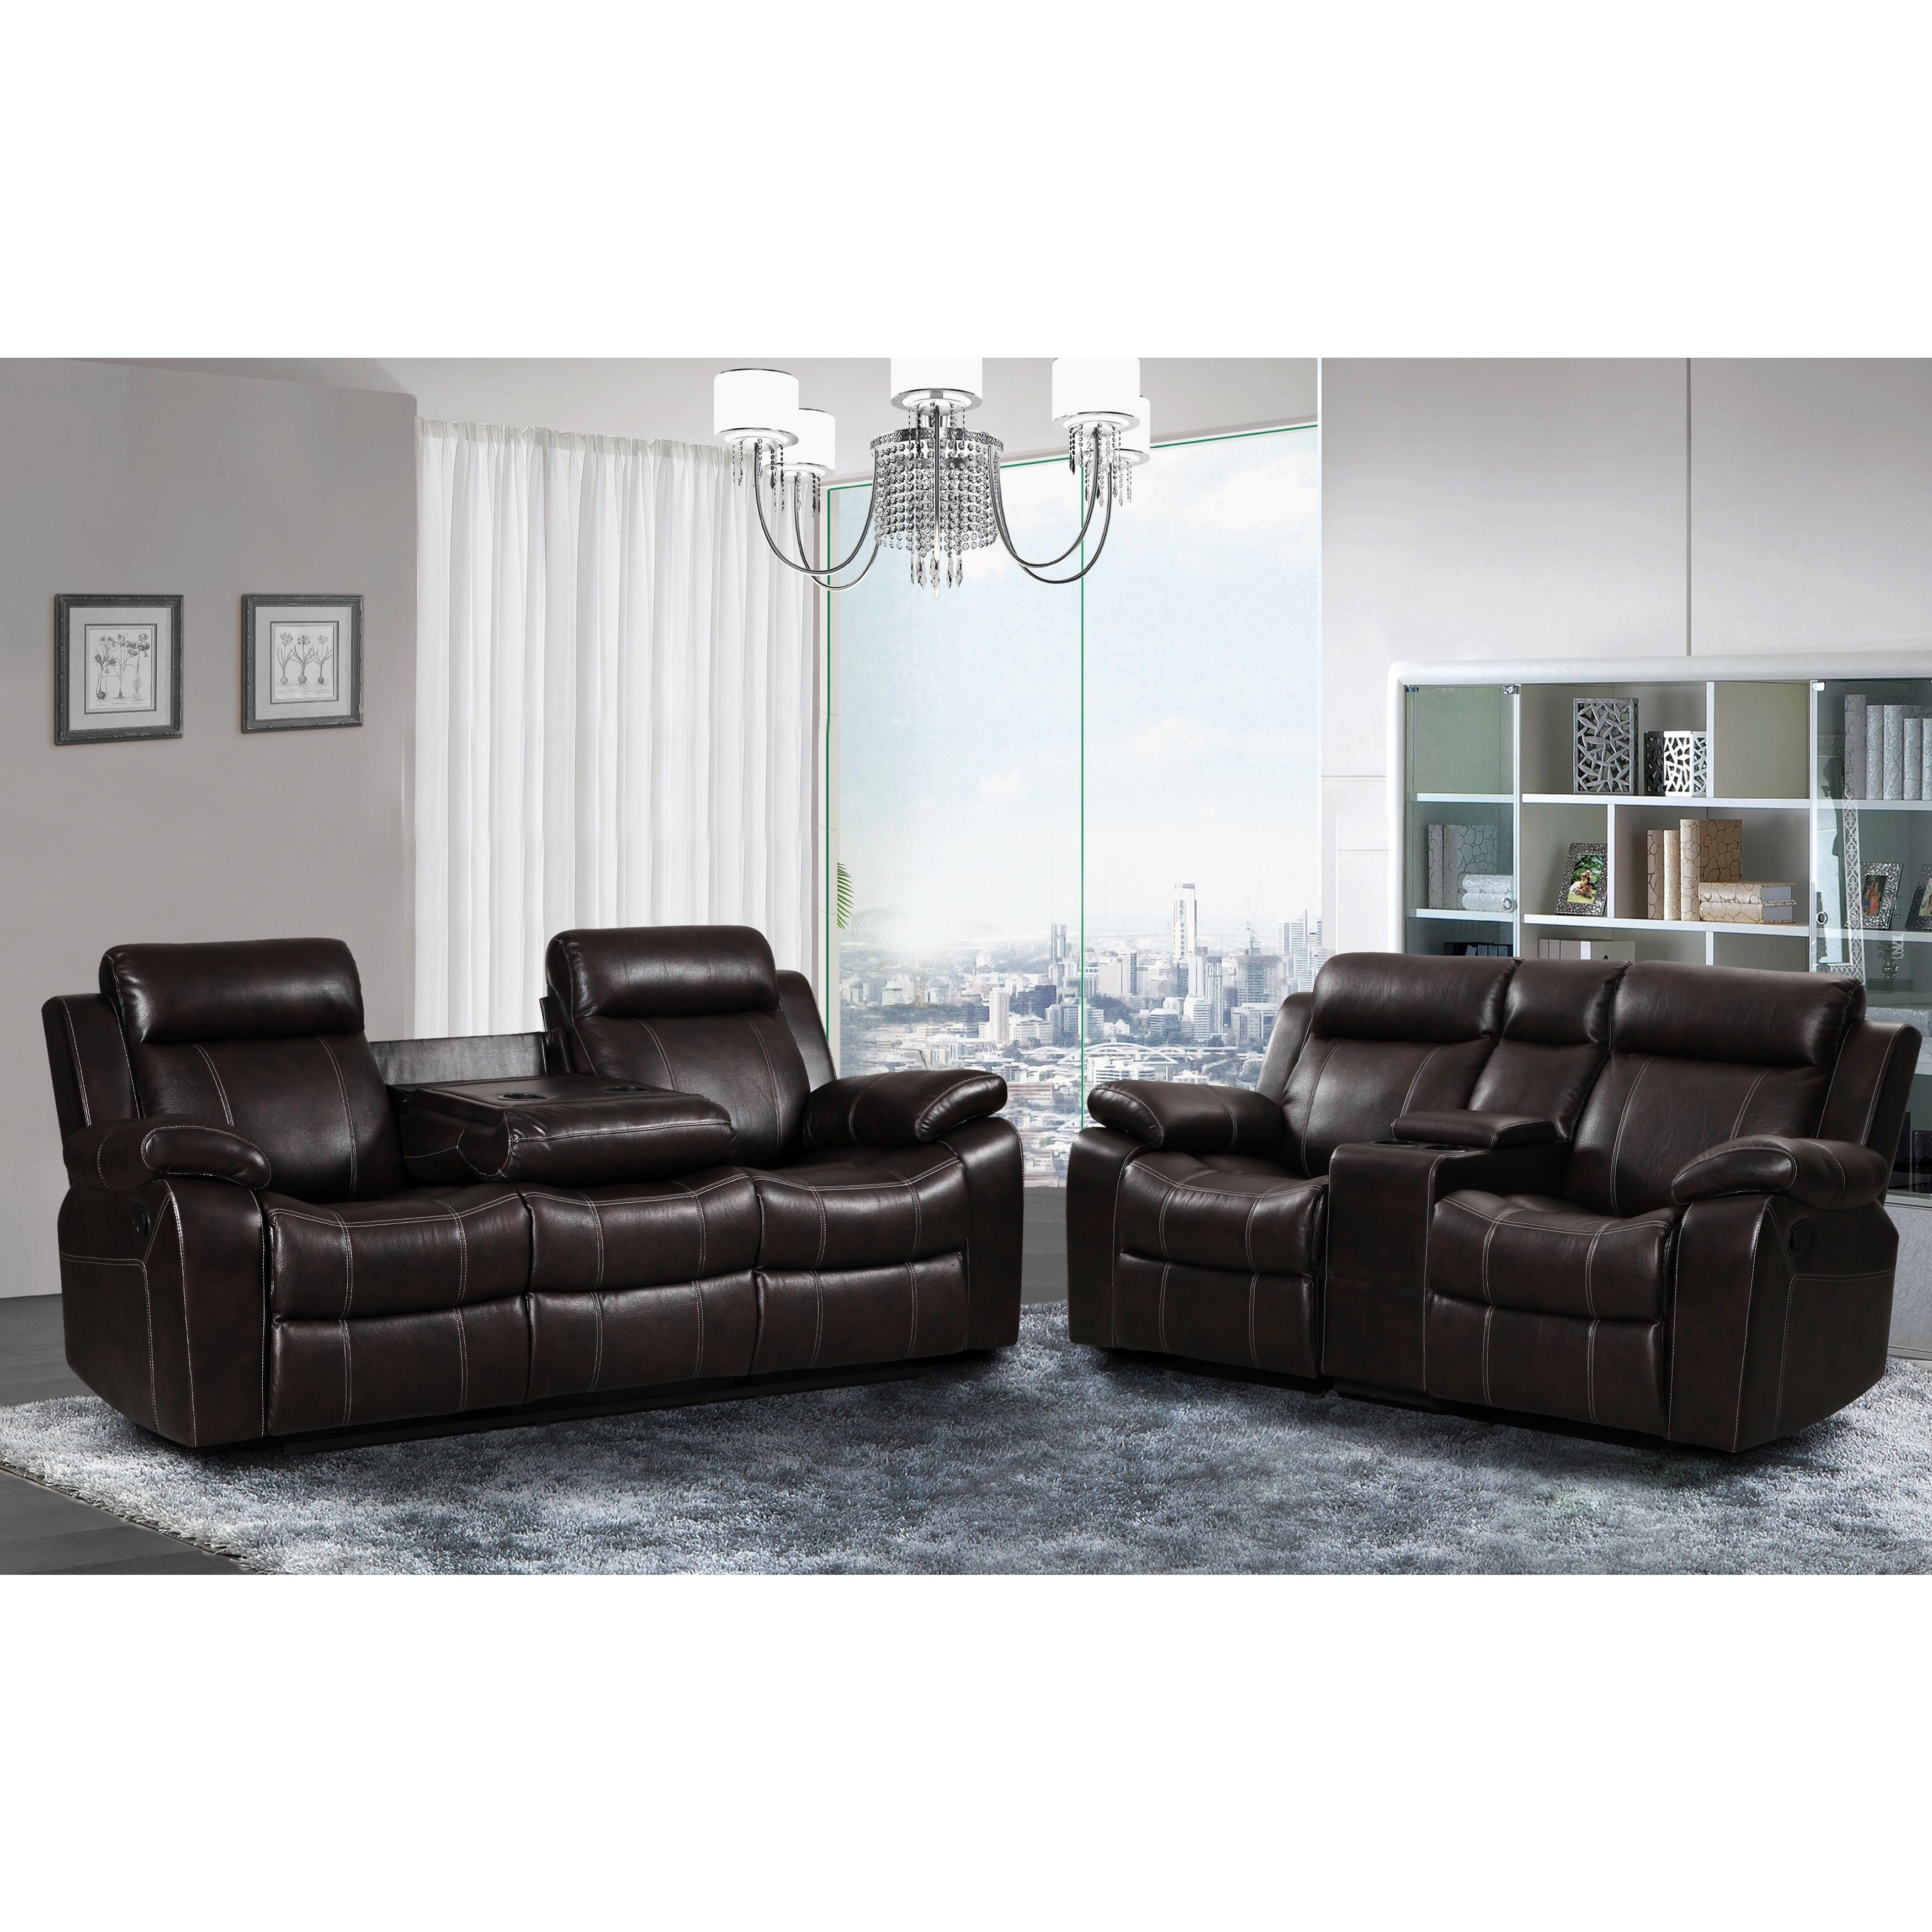 Sherry Dark Brown Leather Air 2 pc Reclining Sofa and Gliding ...